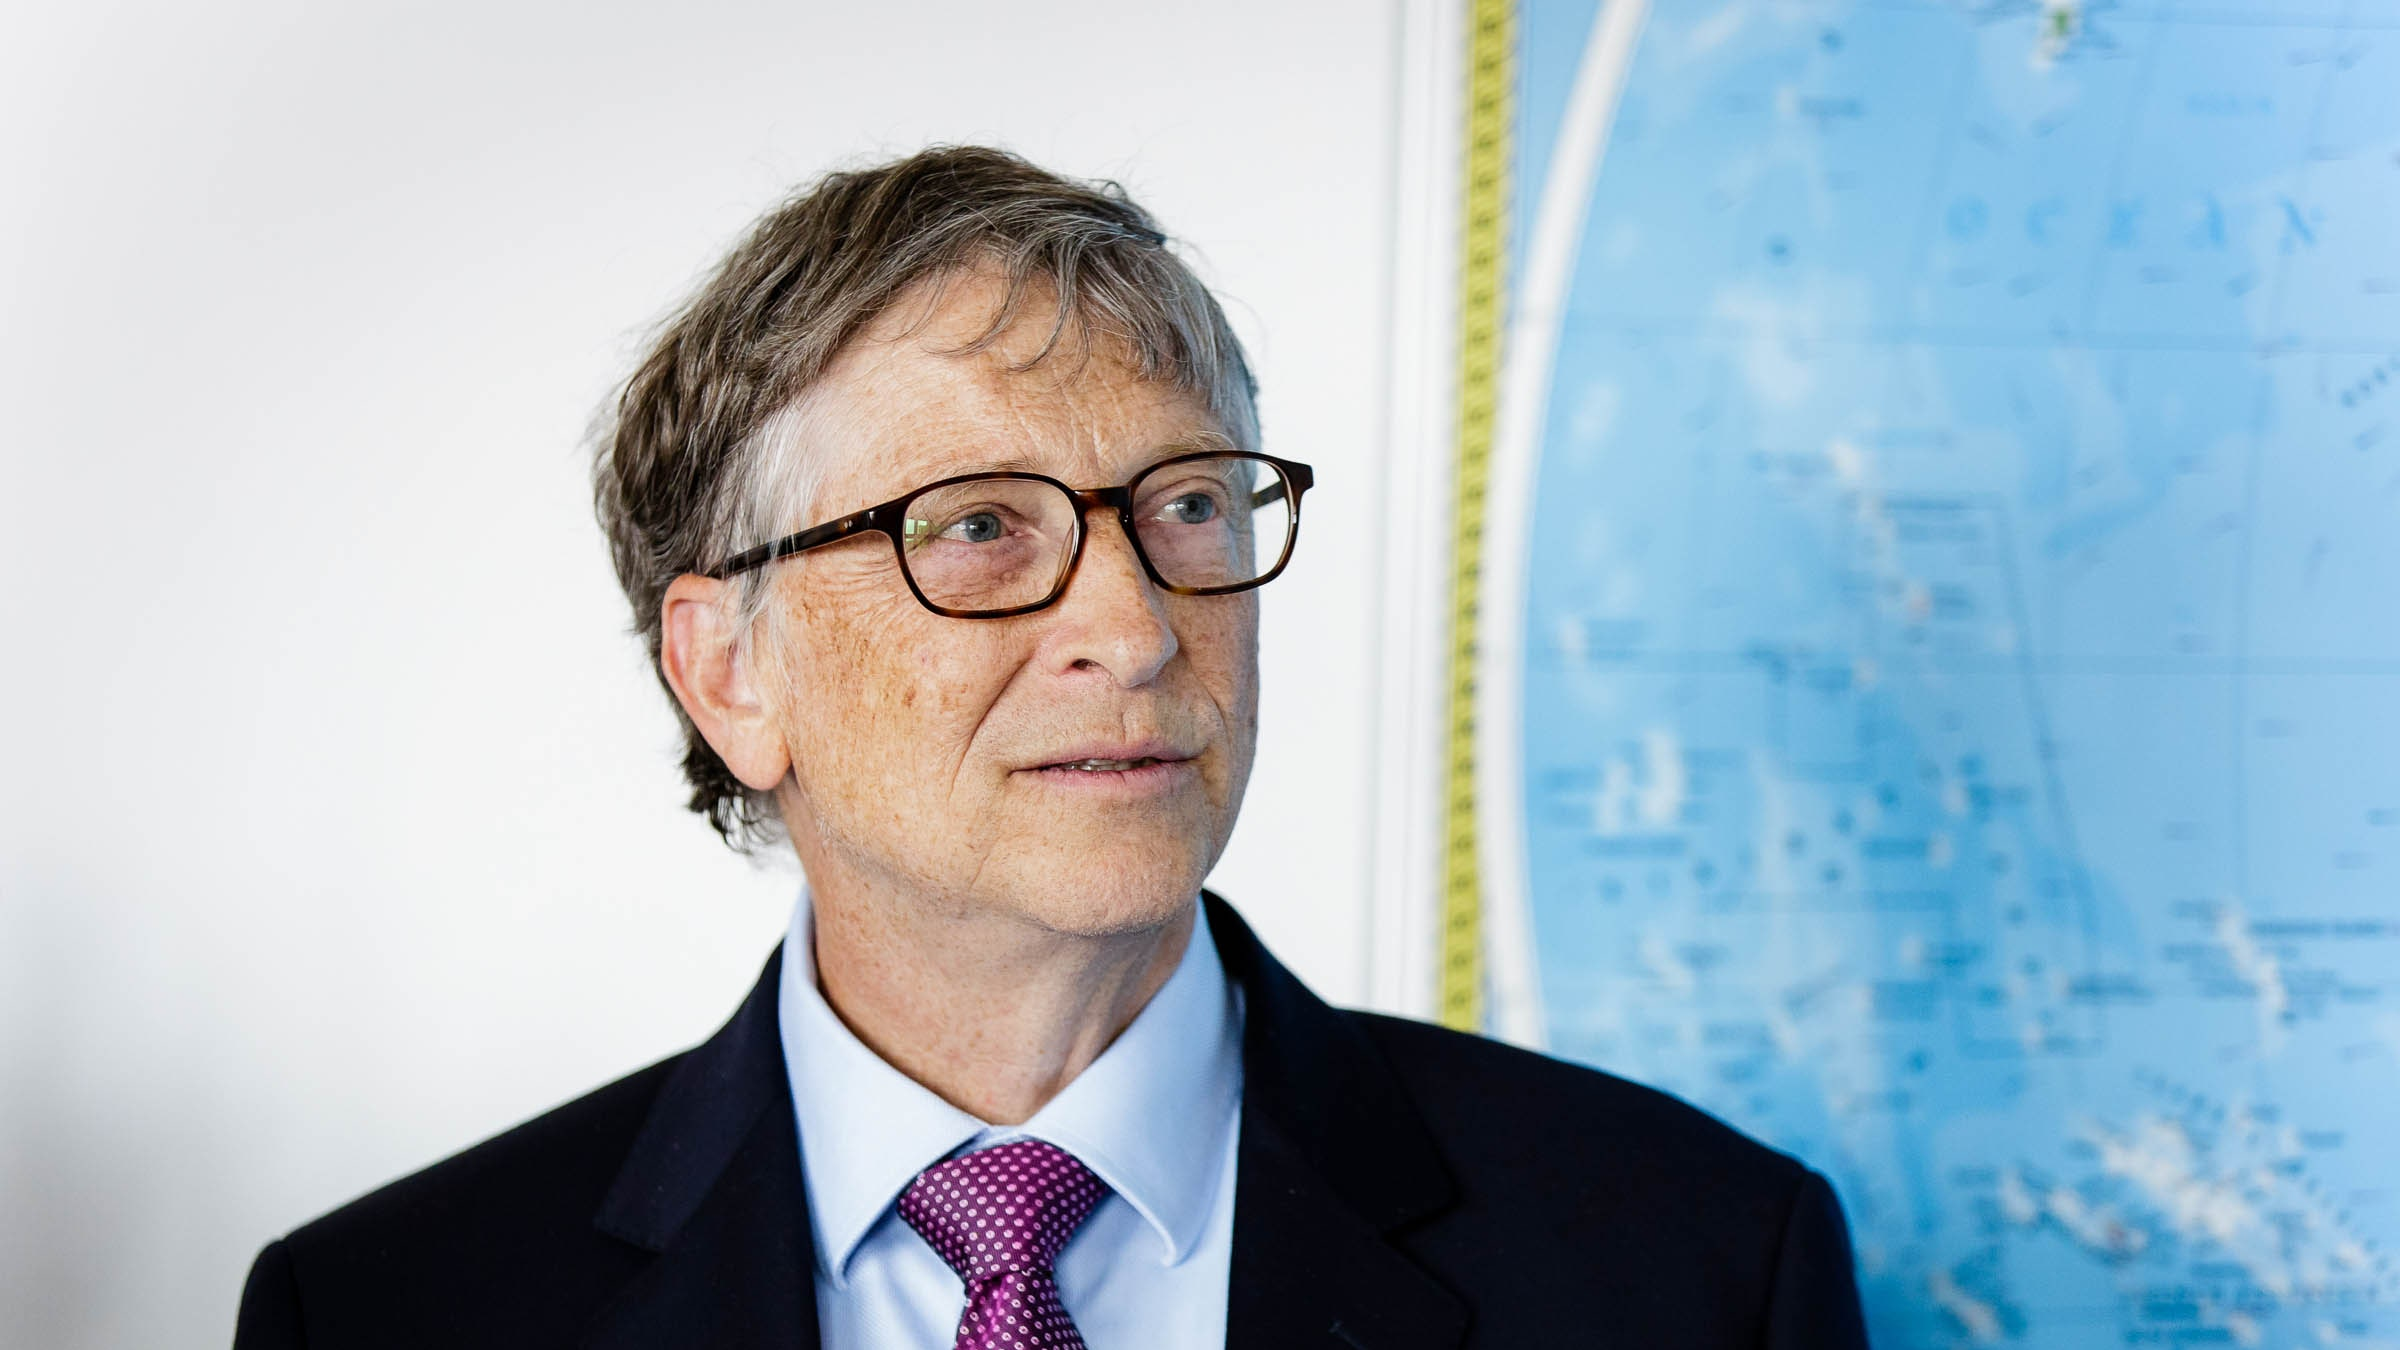 Bill Gates is now the largest private farmland owner in the US